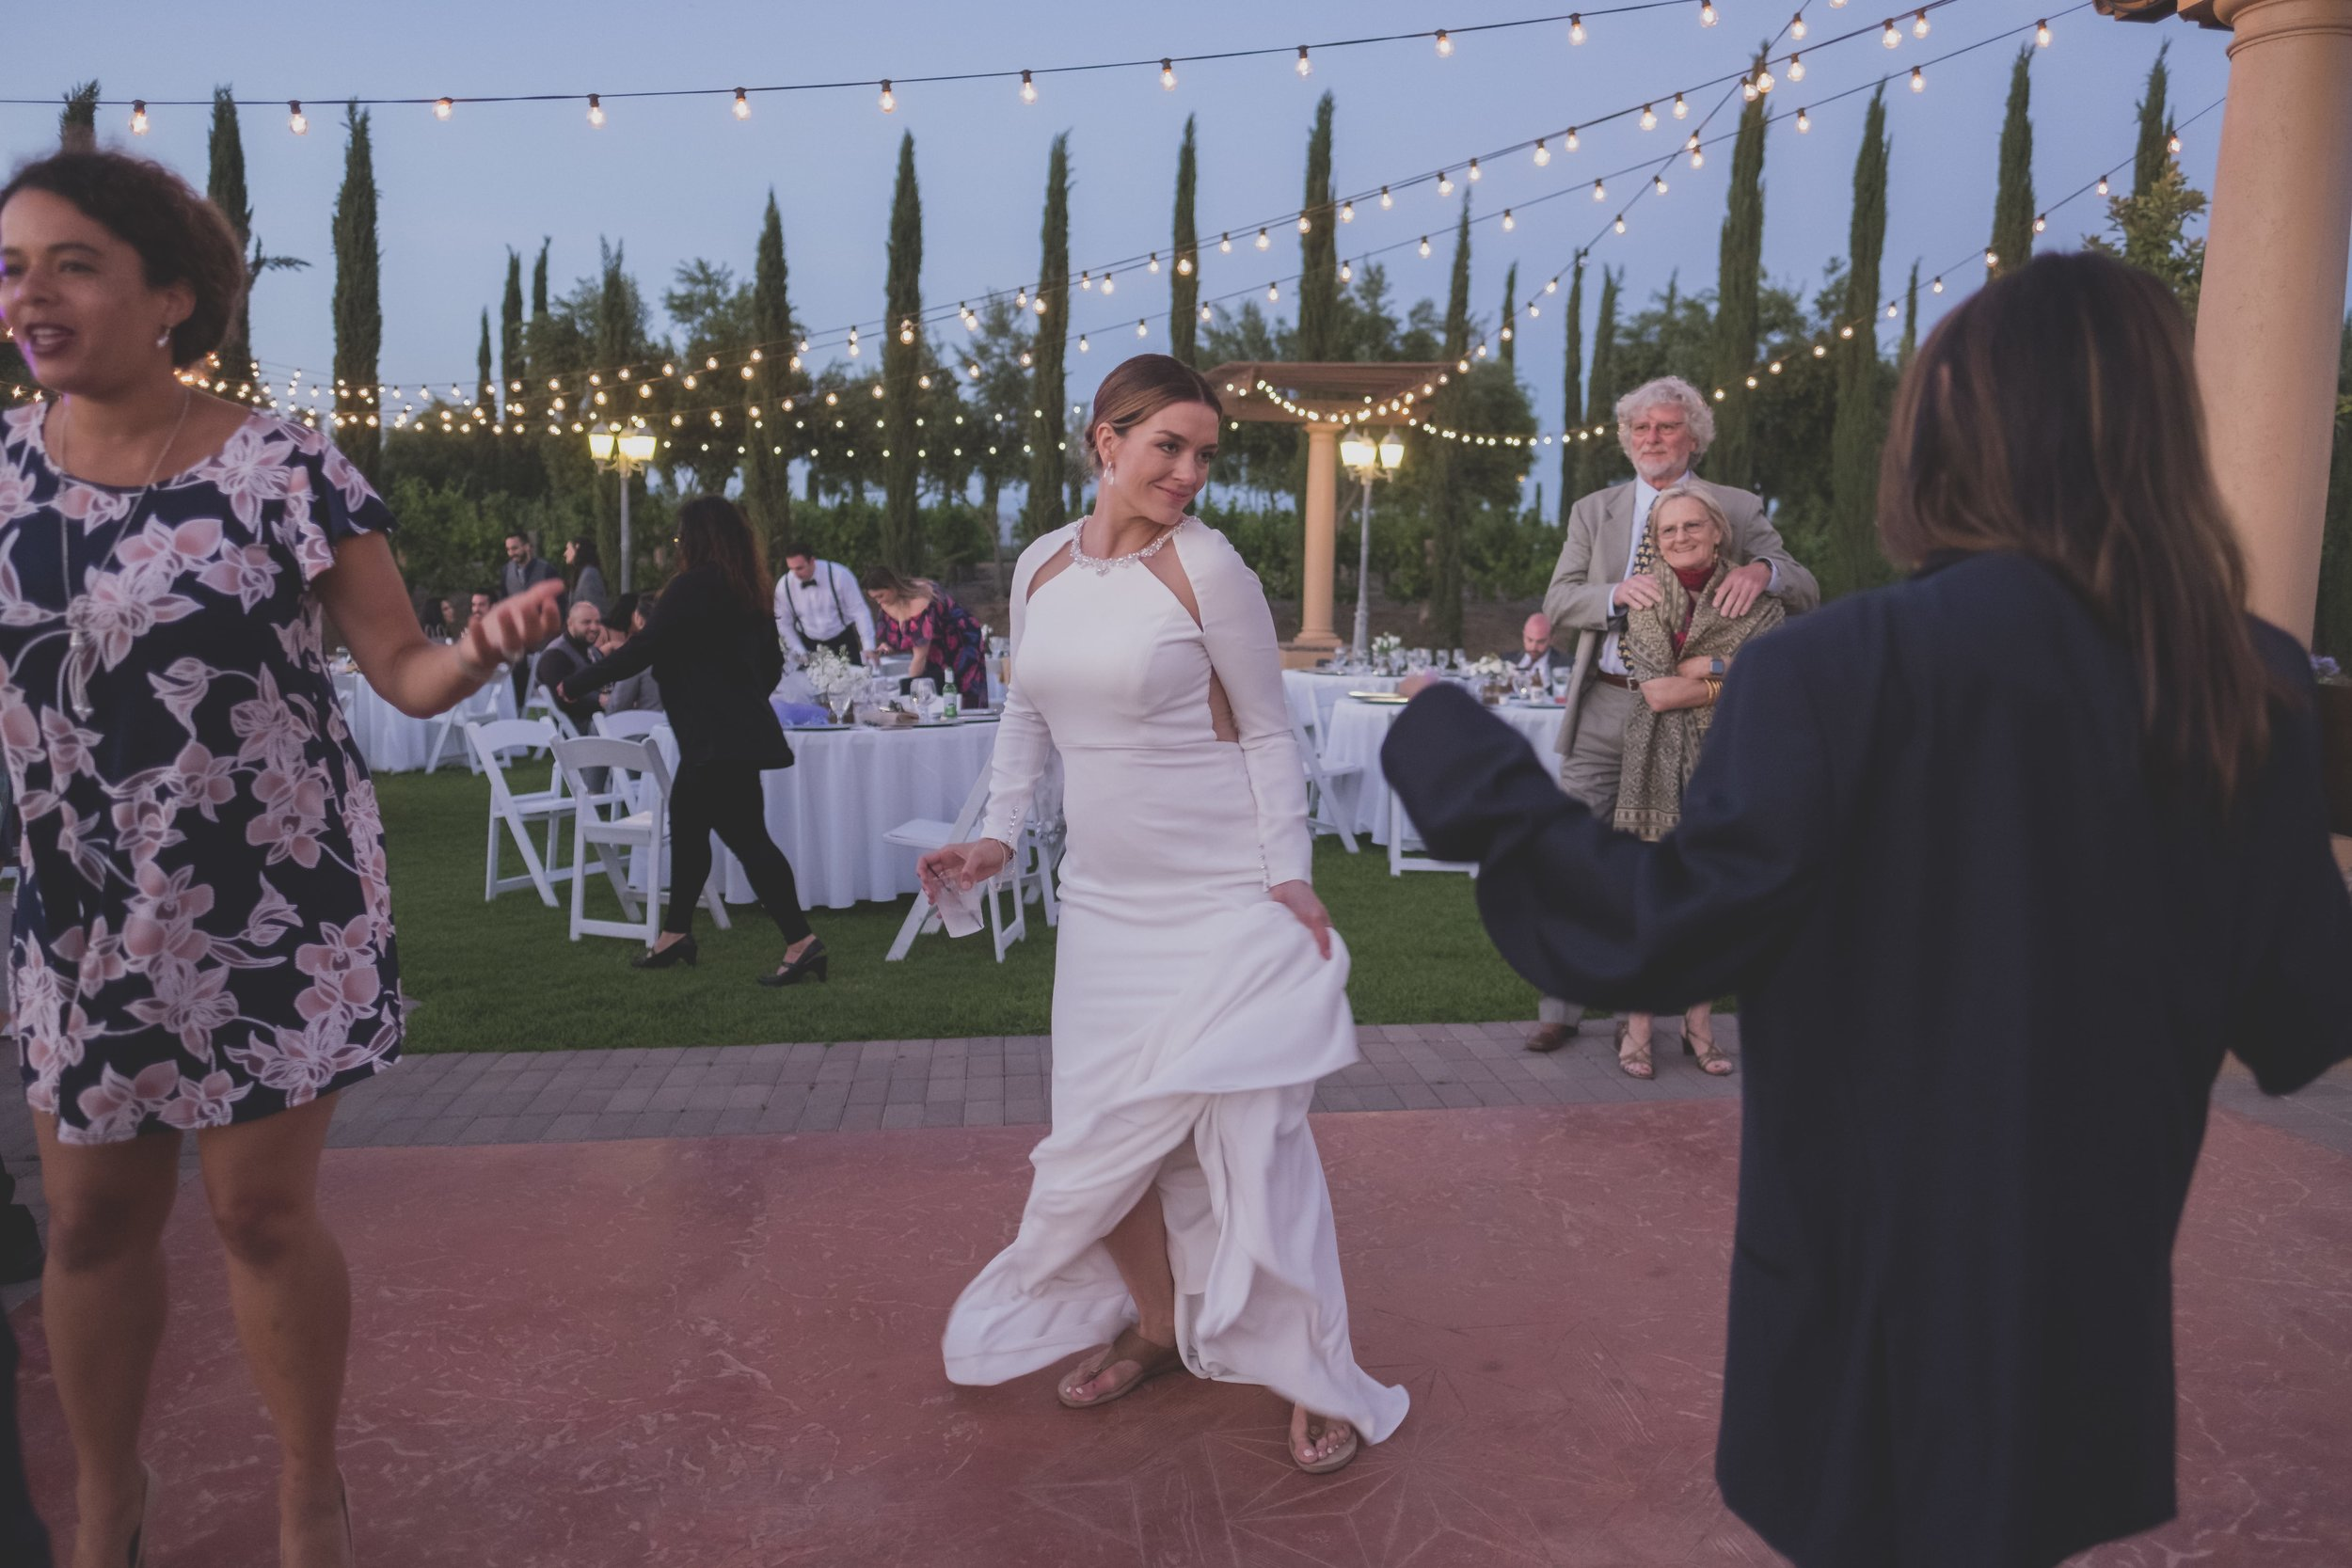 Ways to keep guests cool at your warm-weather wedding - Bride at her outdoor reception dancing solo under a darkening sky.